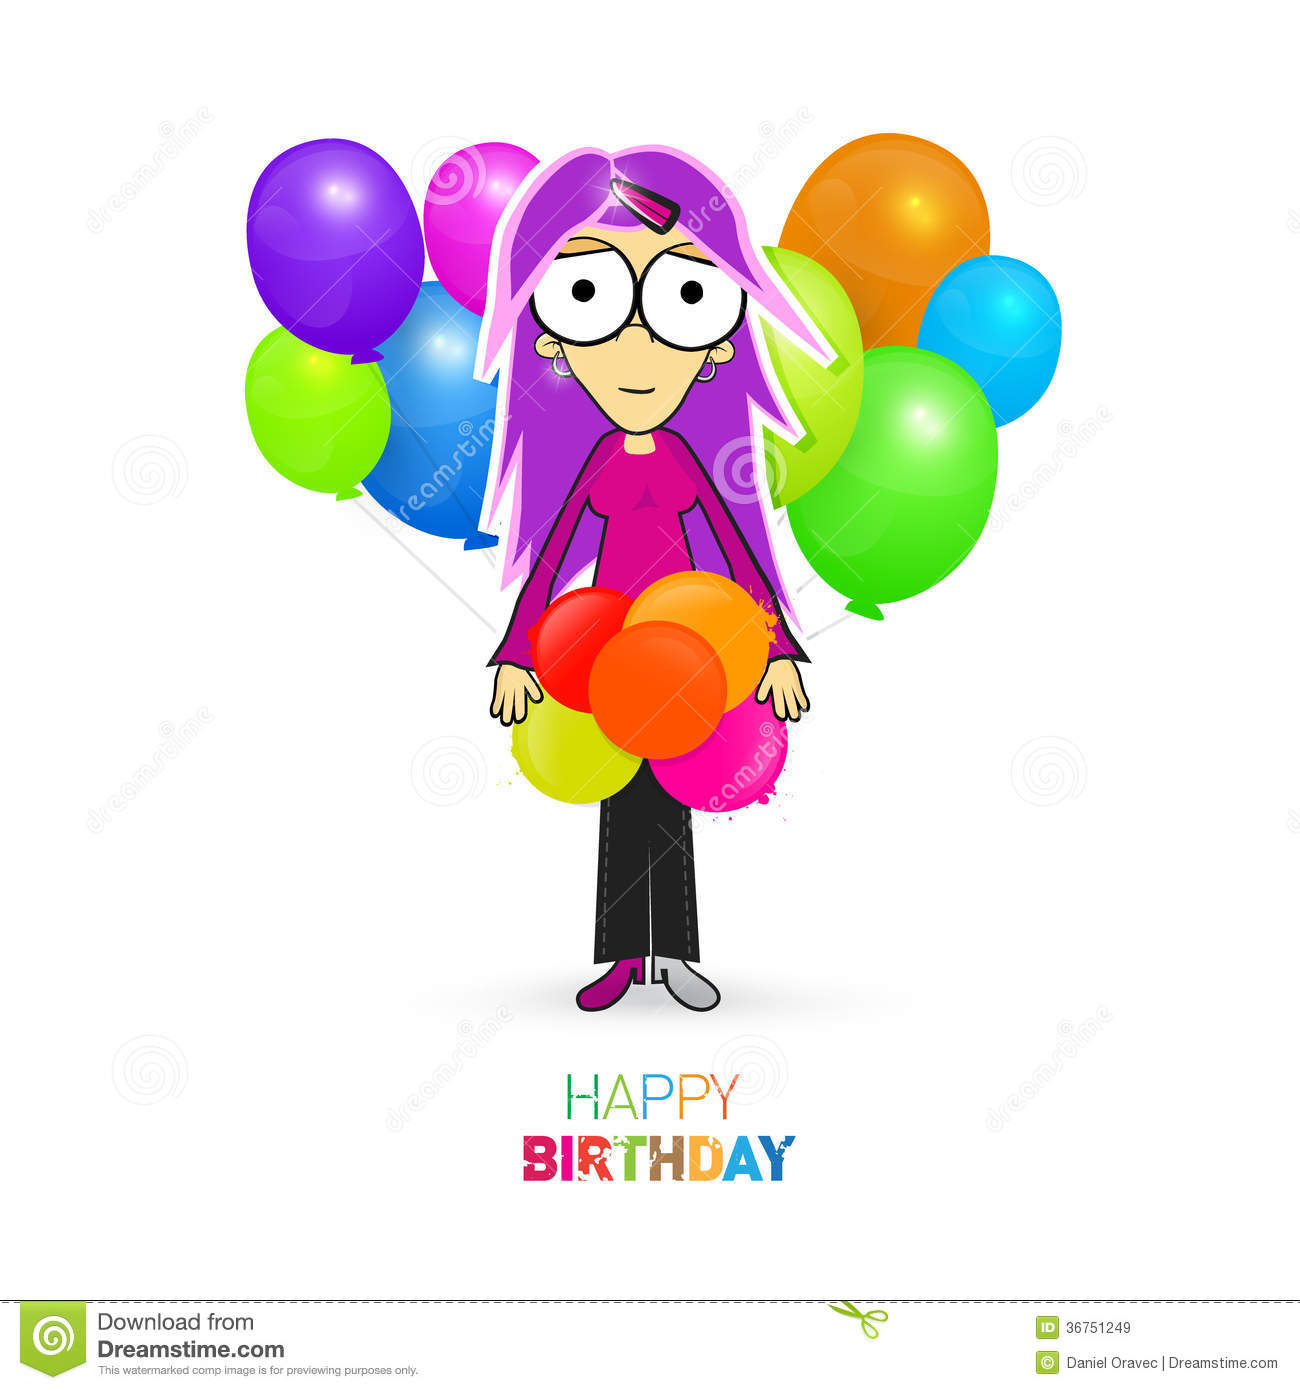 Happy Birthday Balloons with Girl